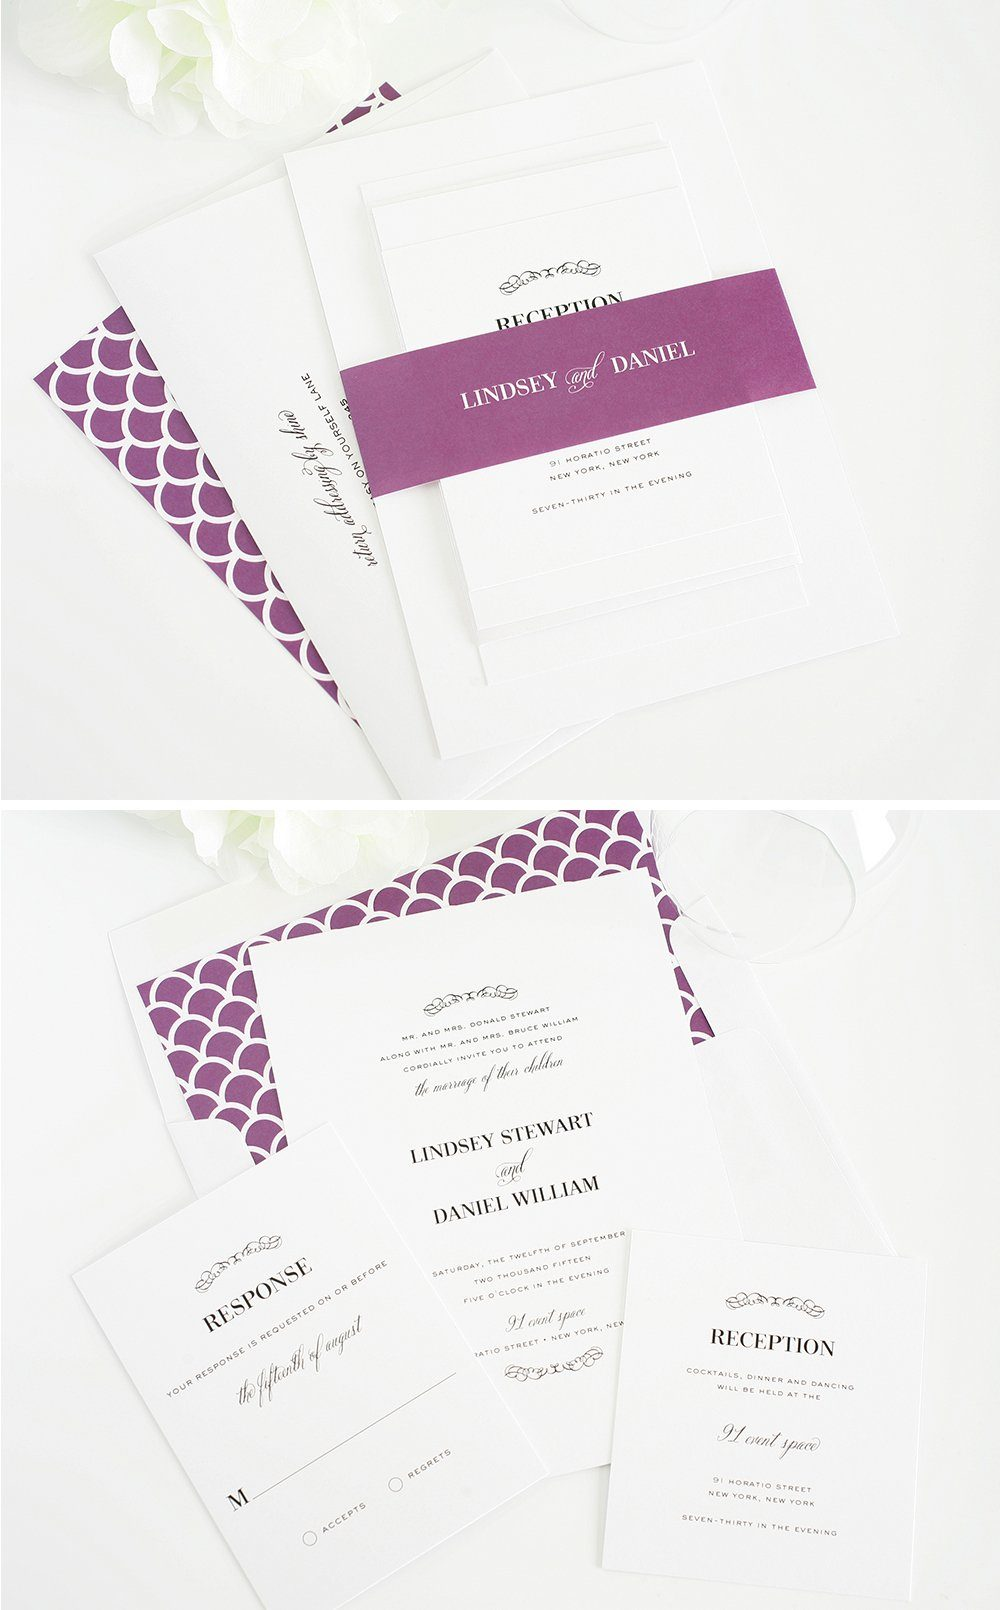 Patterned wedding invitations in purple